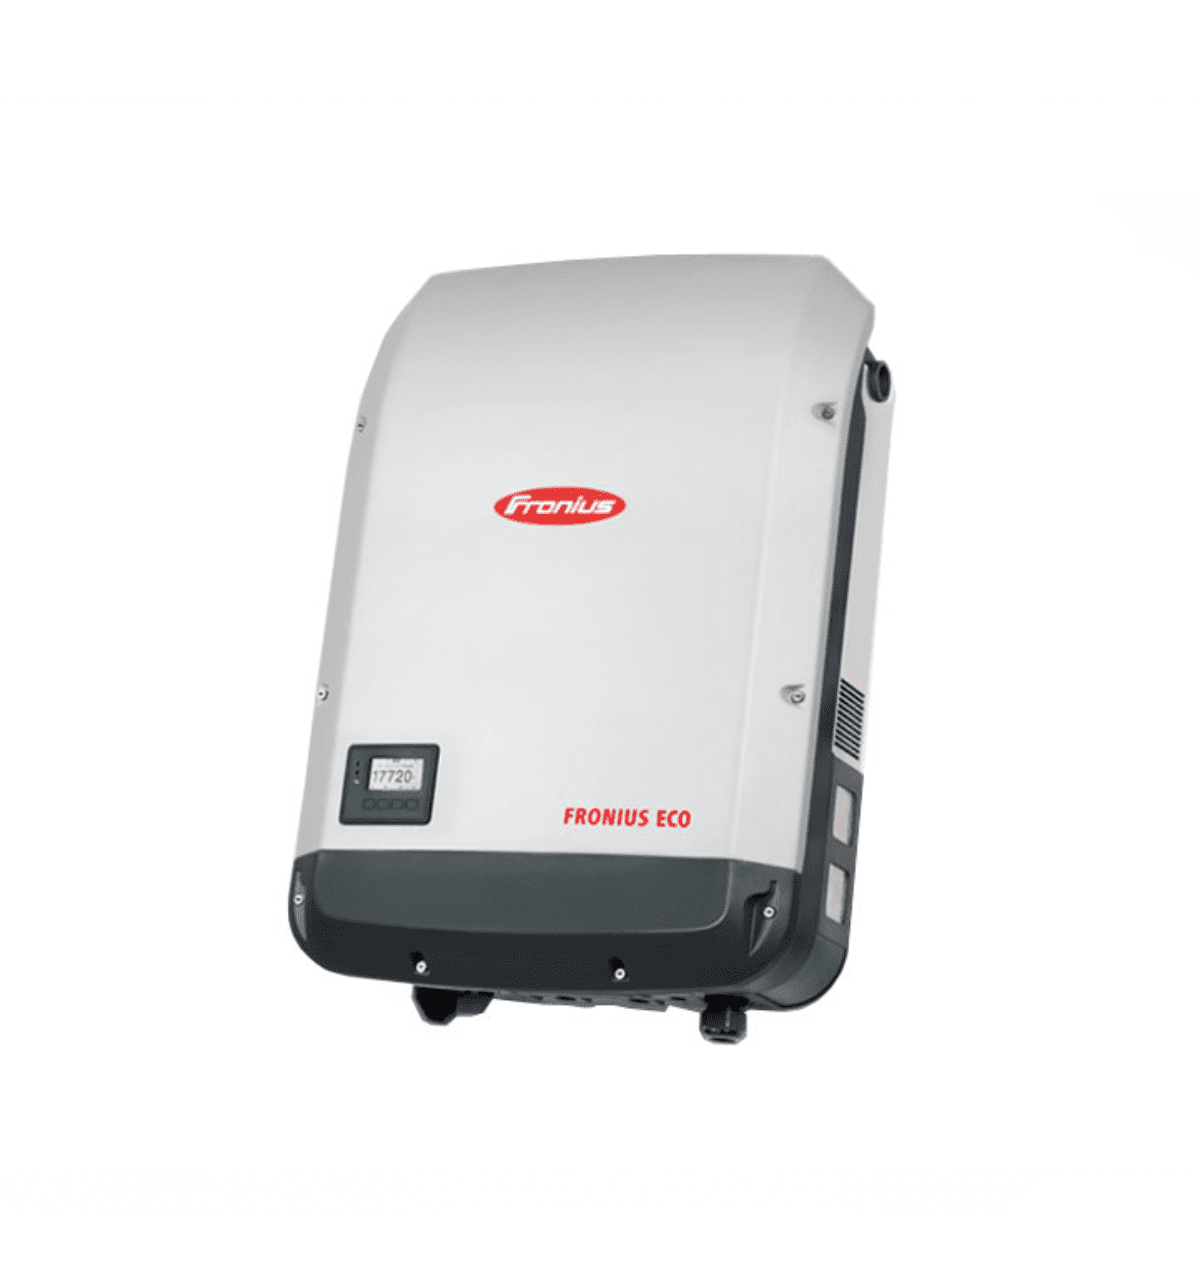 Buy Fronius Eco 27.0-3-S 3ph 27kW Solar Inverter + Data Manager @ DIY Solar Energy Store for Sale